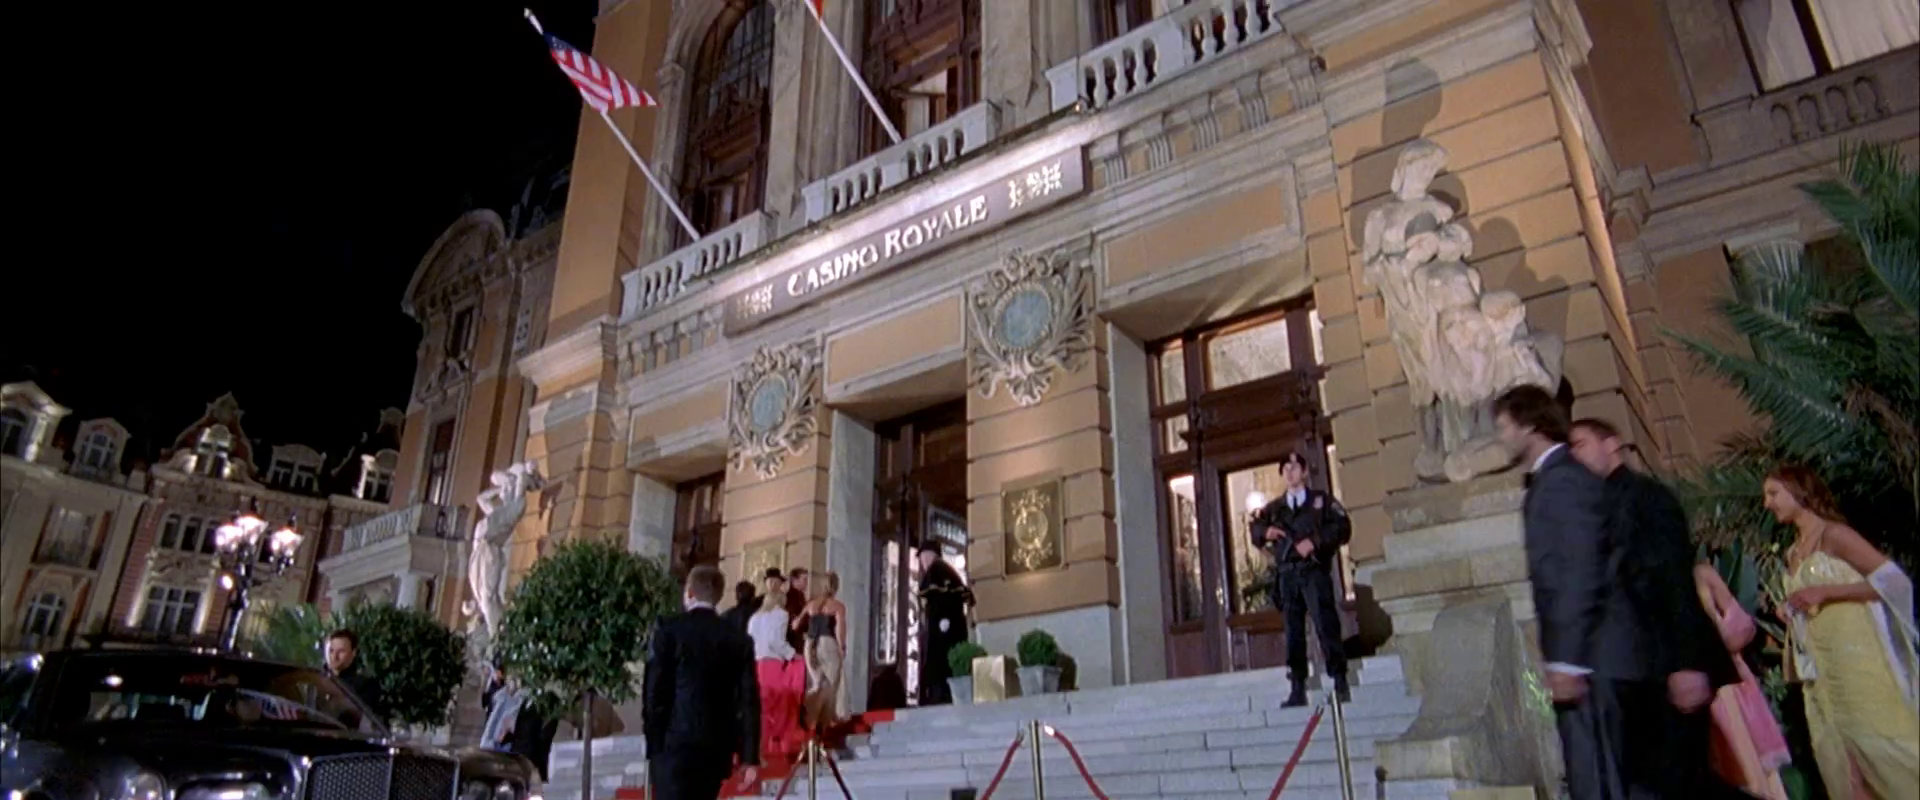 Casino Royale (location) | James Bond Wiki | FANDOM powered by Wikia